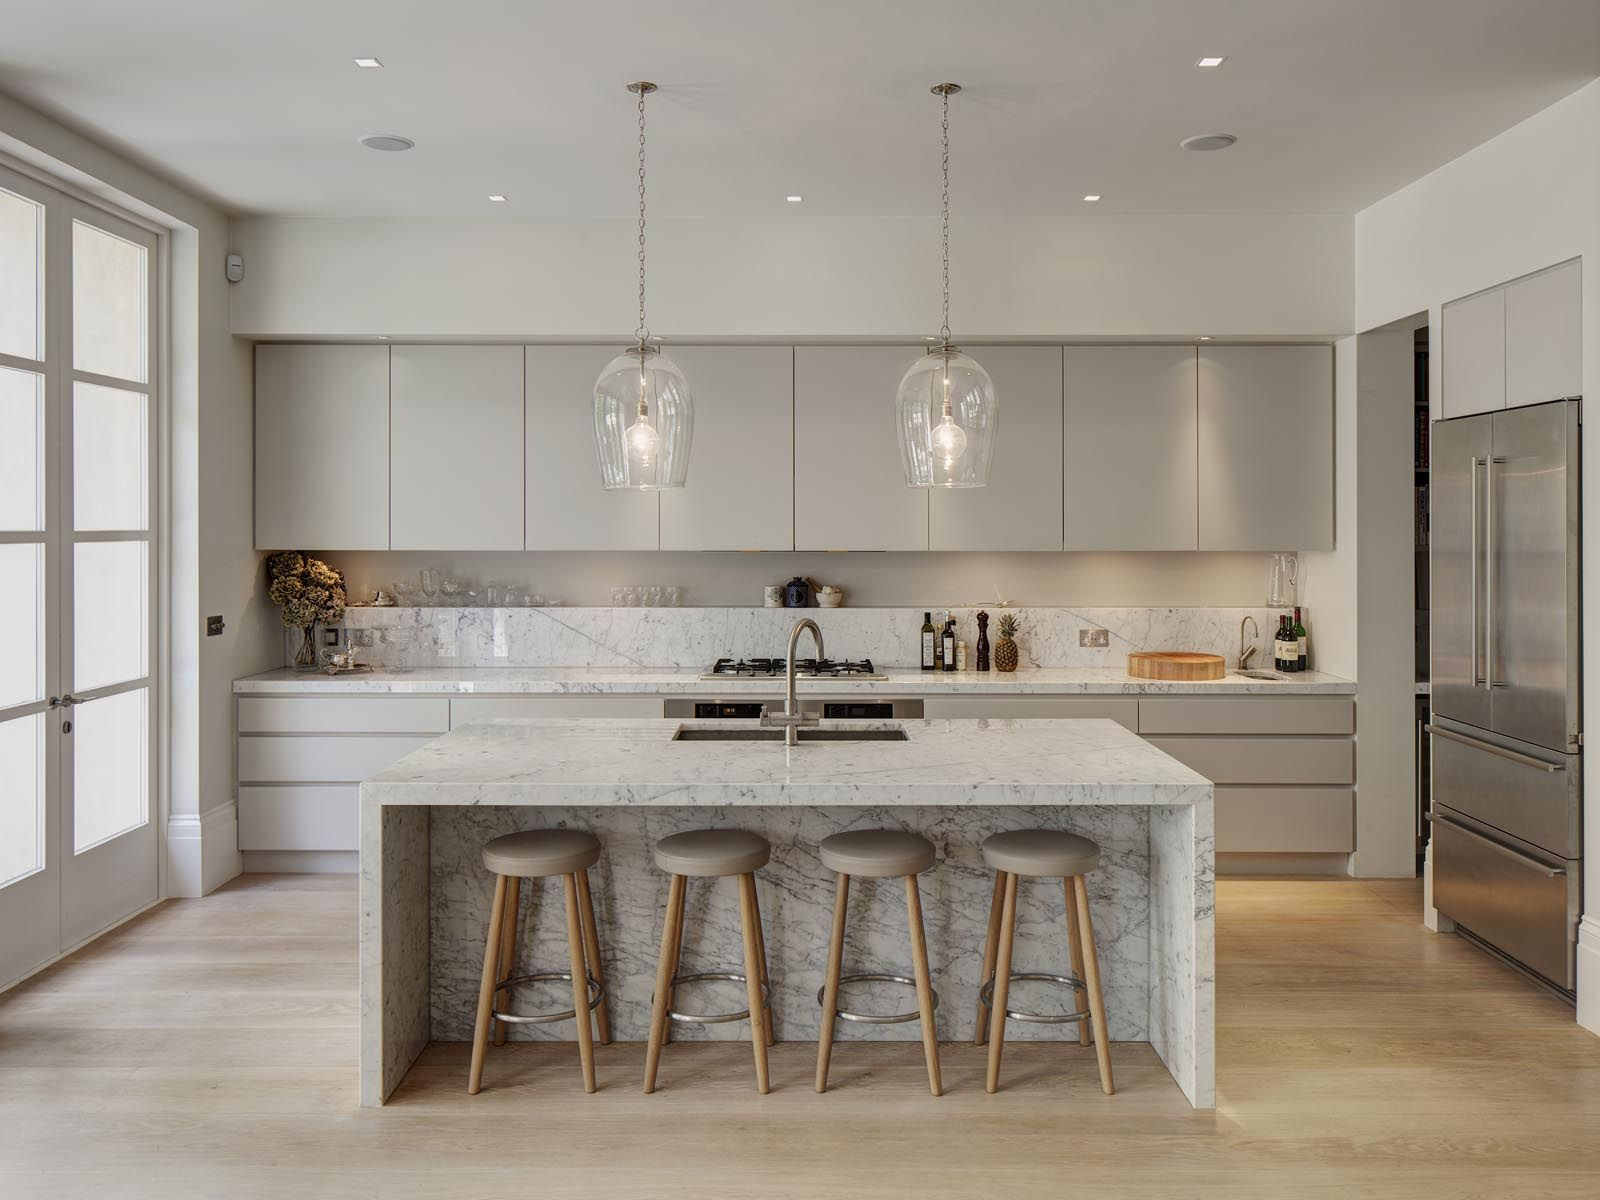 kitchen dining contemporary kitchen lighting best images about Kitchen Dining on Pinterest Chairs Hardware and Parisian apartment